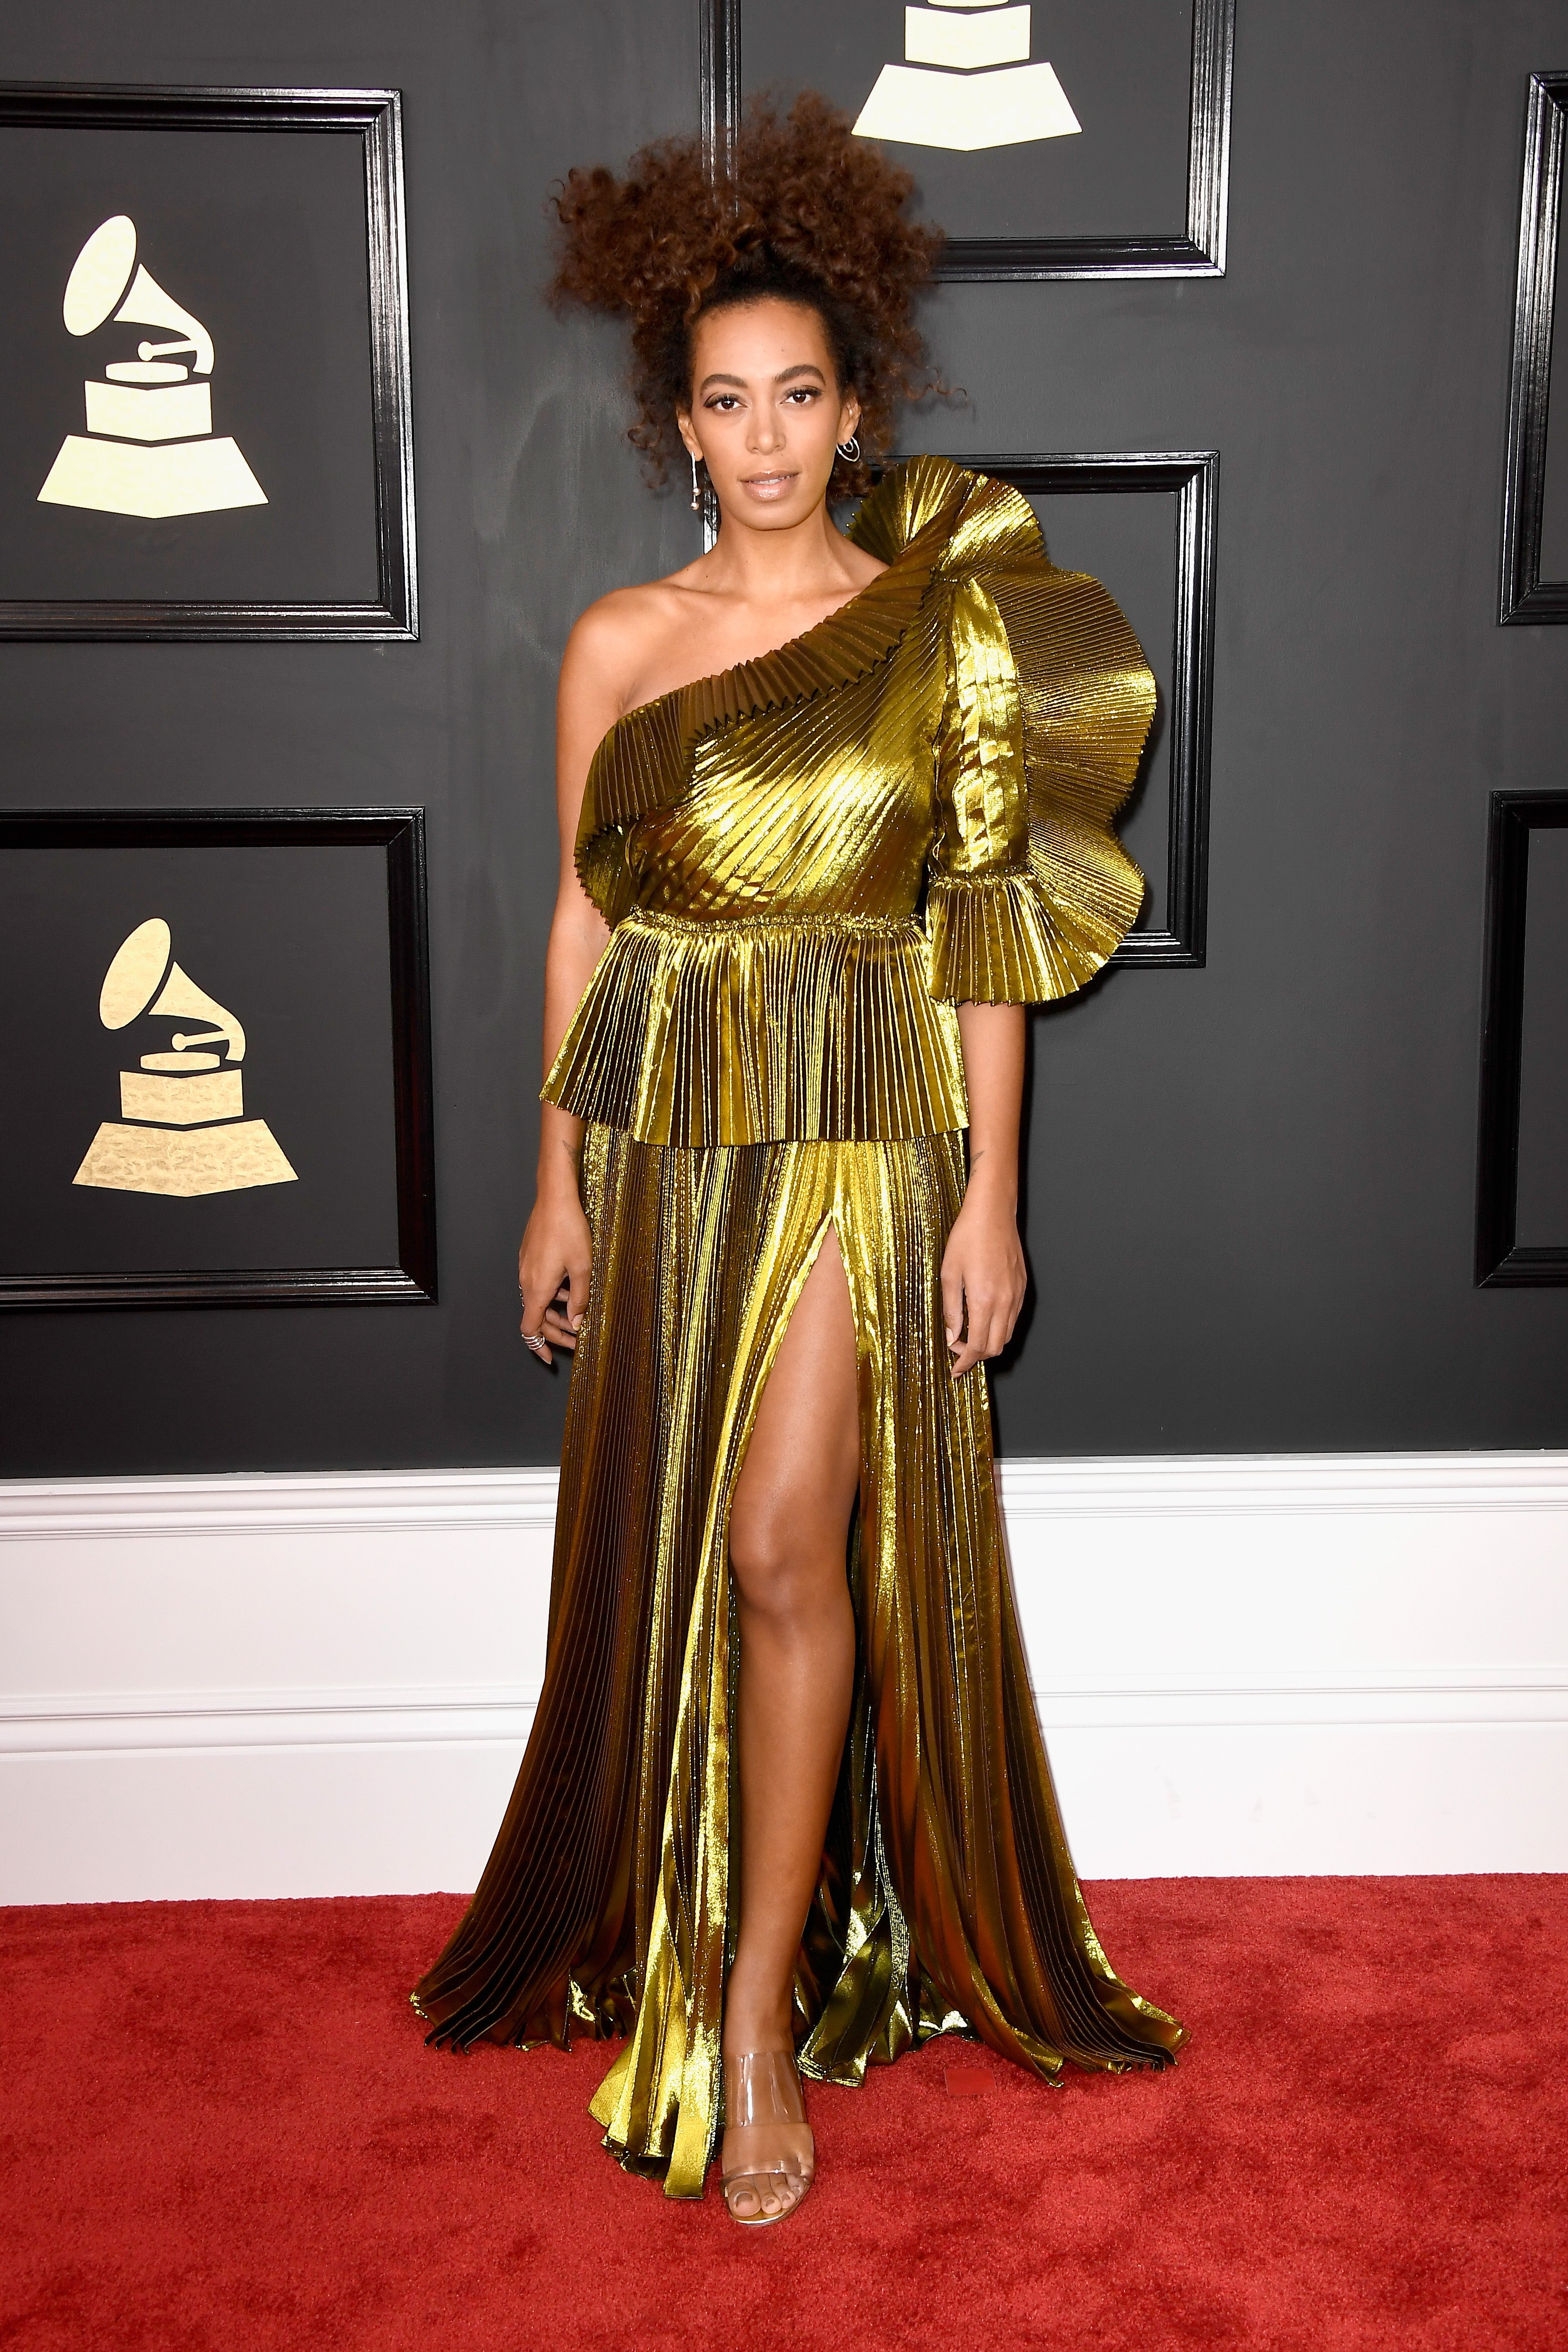 17794bcae102 The 59th Annual Grammy Awards Red Carpet Was on Another Level of Fabulous